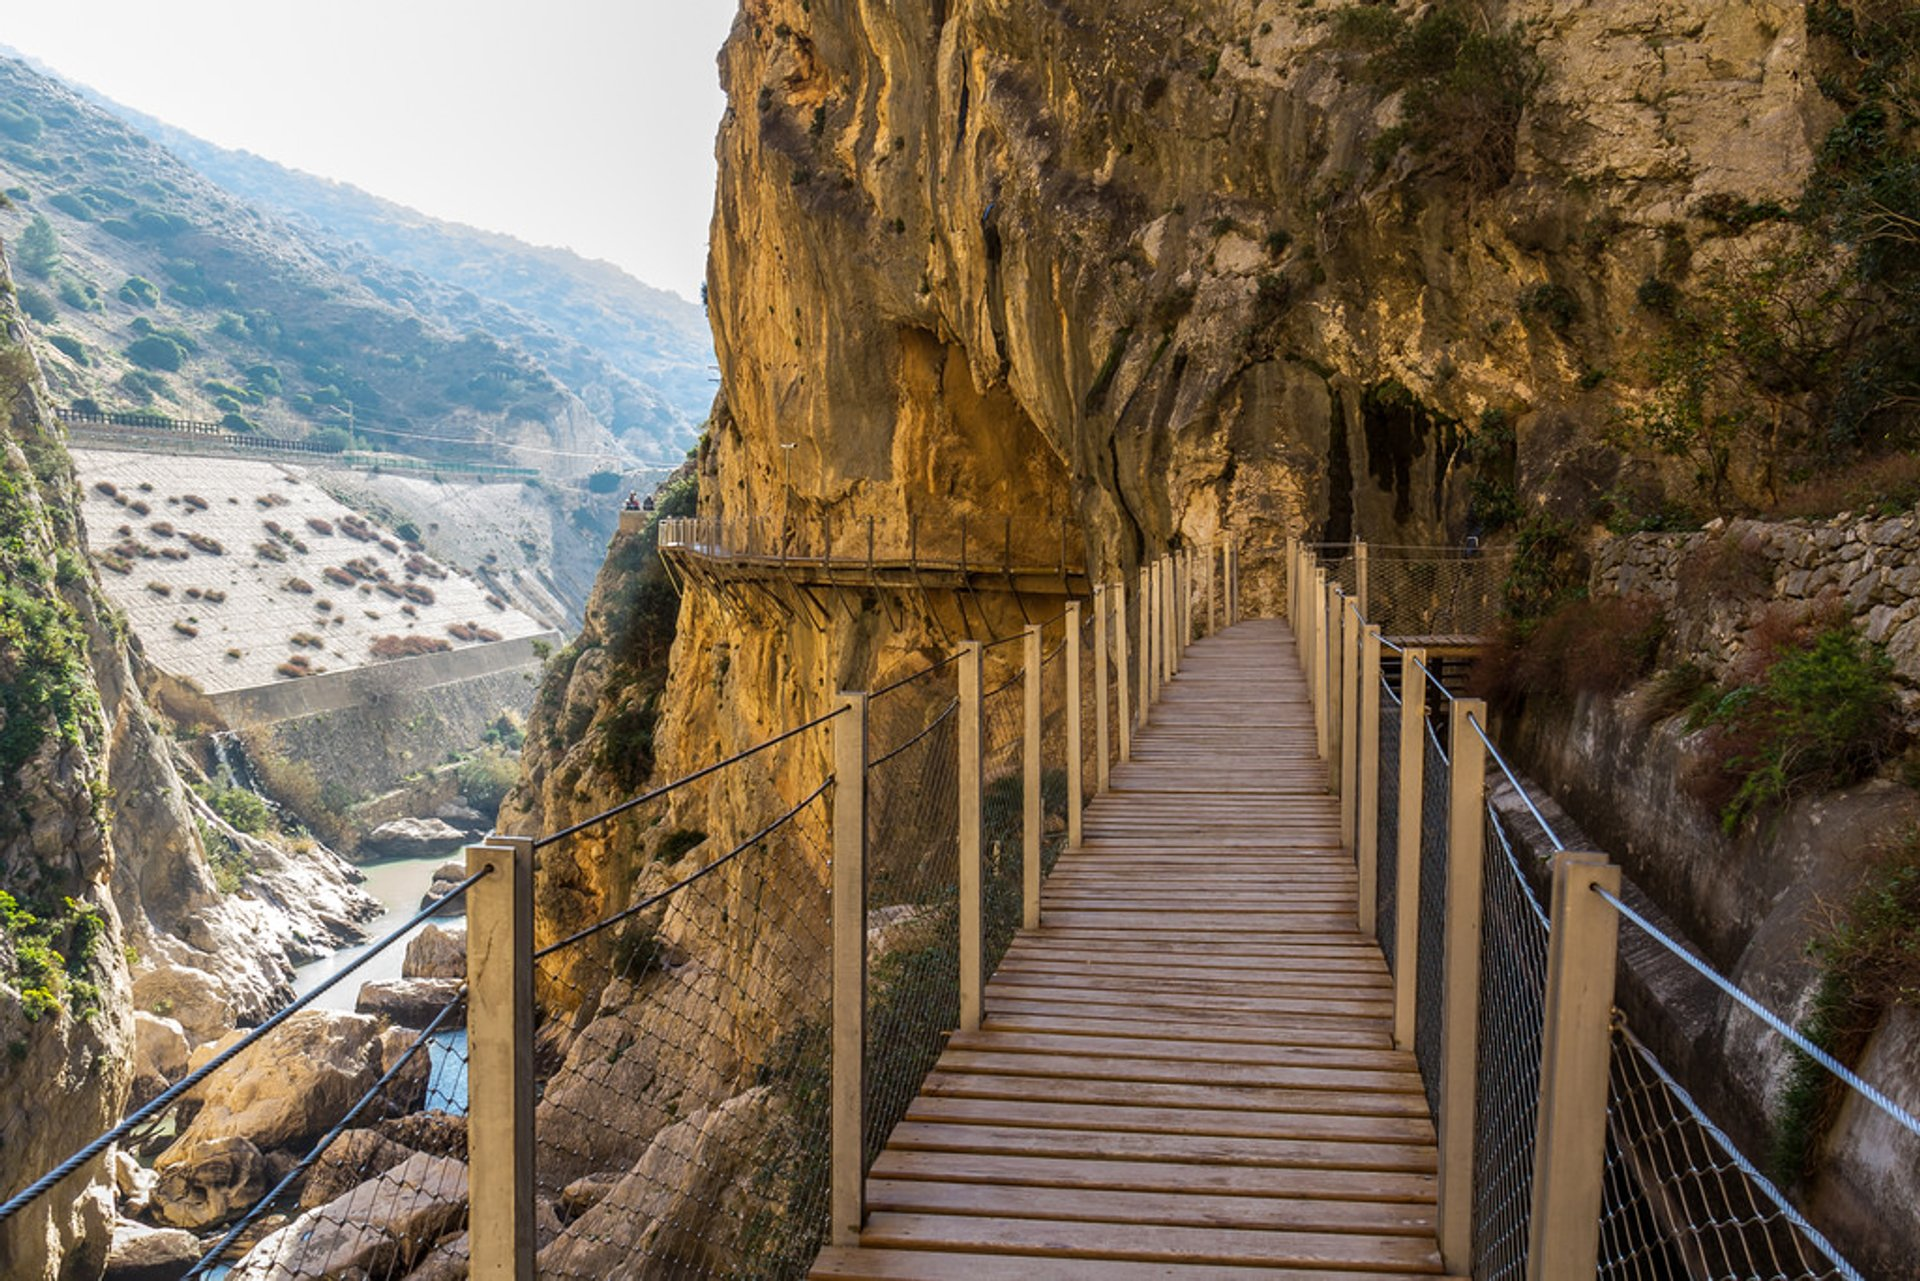 El Caminito Del Rey (King's Path) in Spain 2019 - Best Time